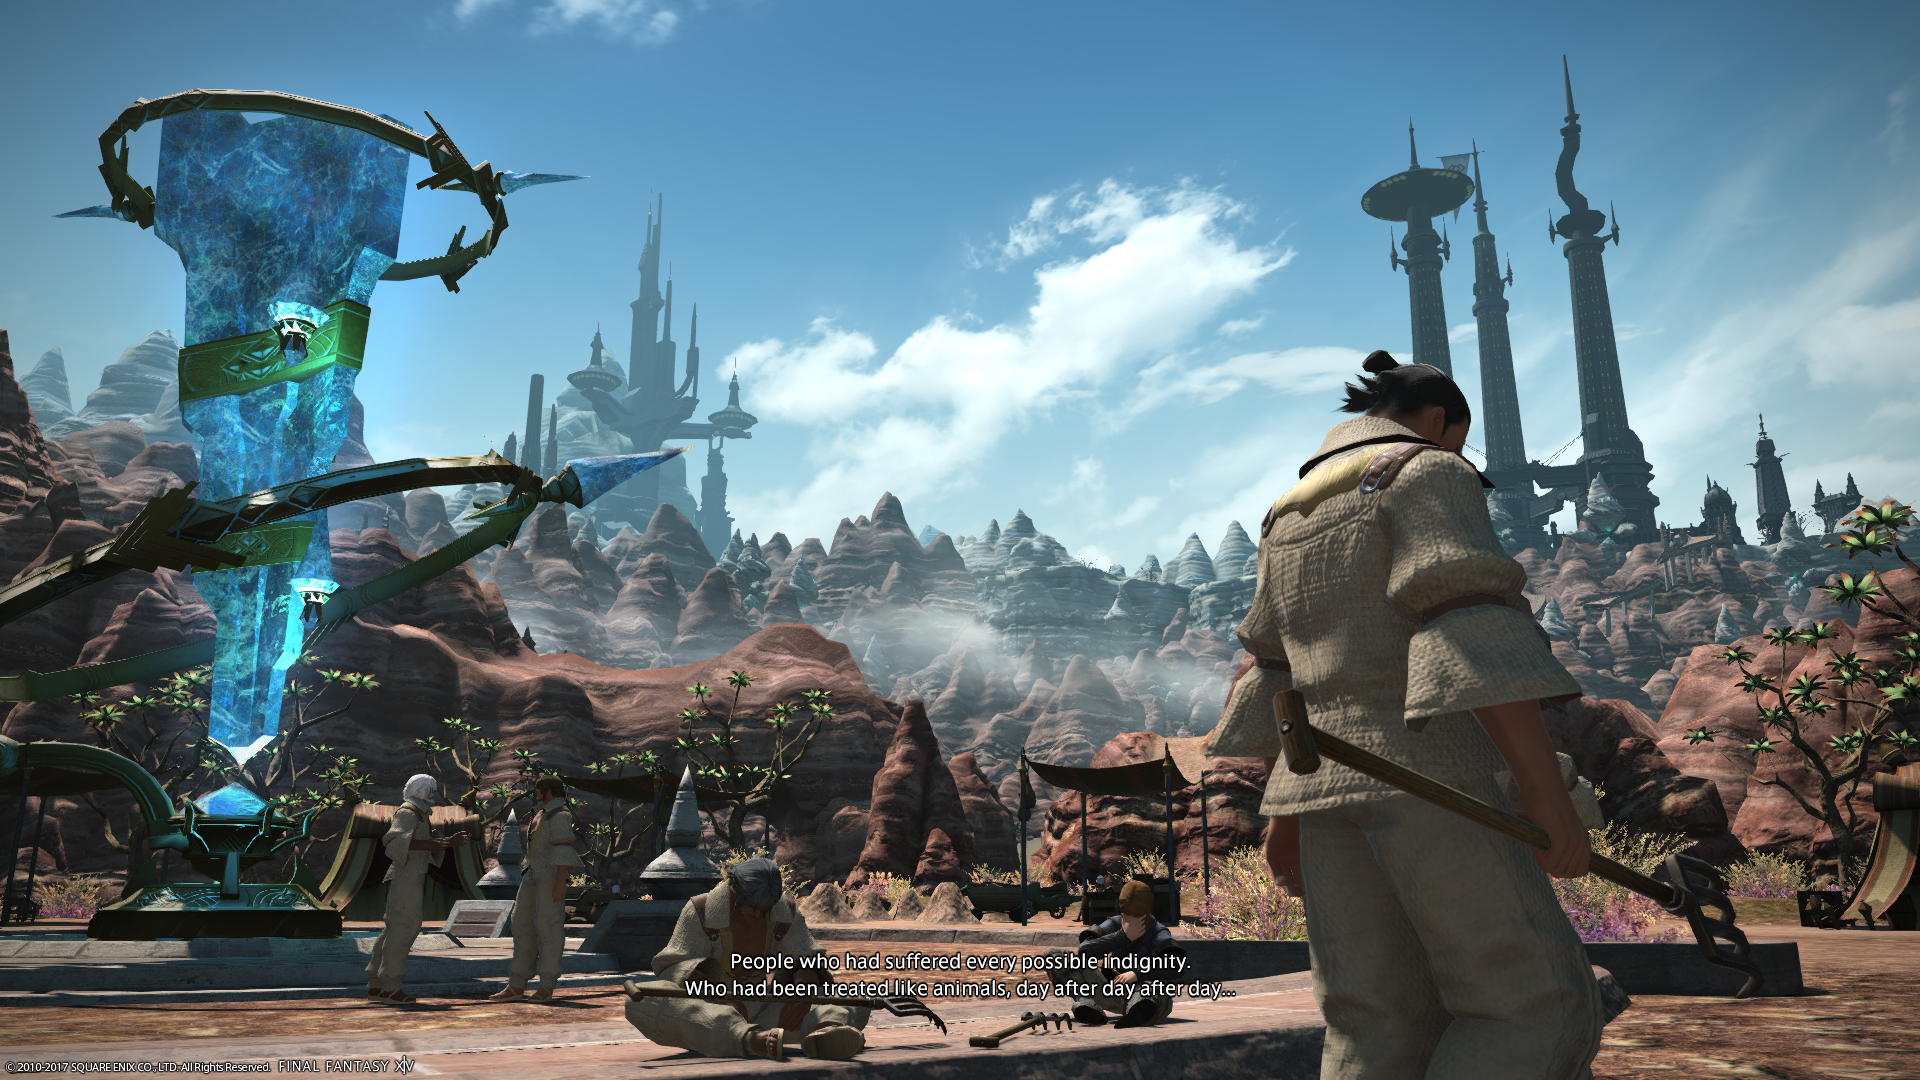 Final Fantasy XIV: Stormblood makes its colonialism as awful as it